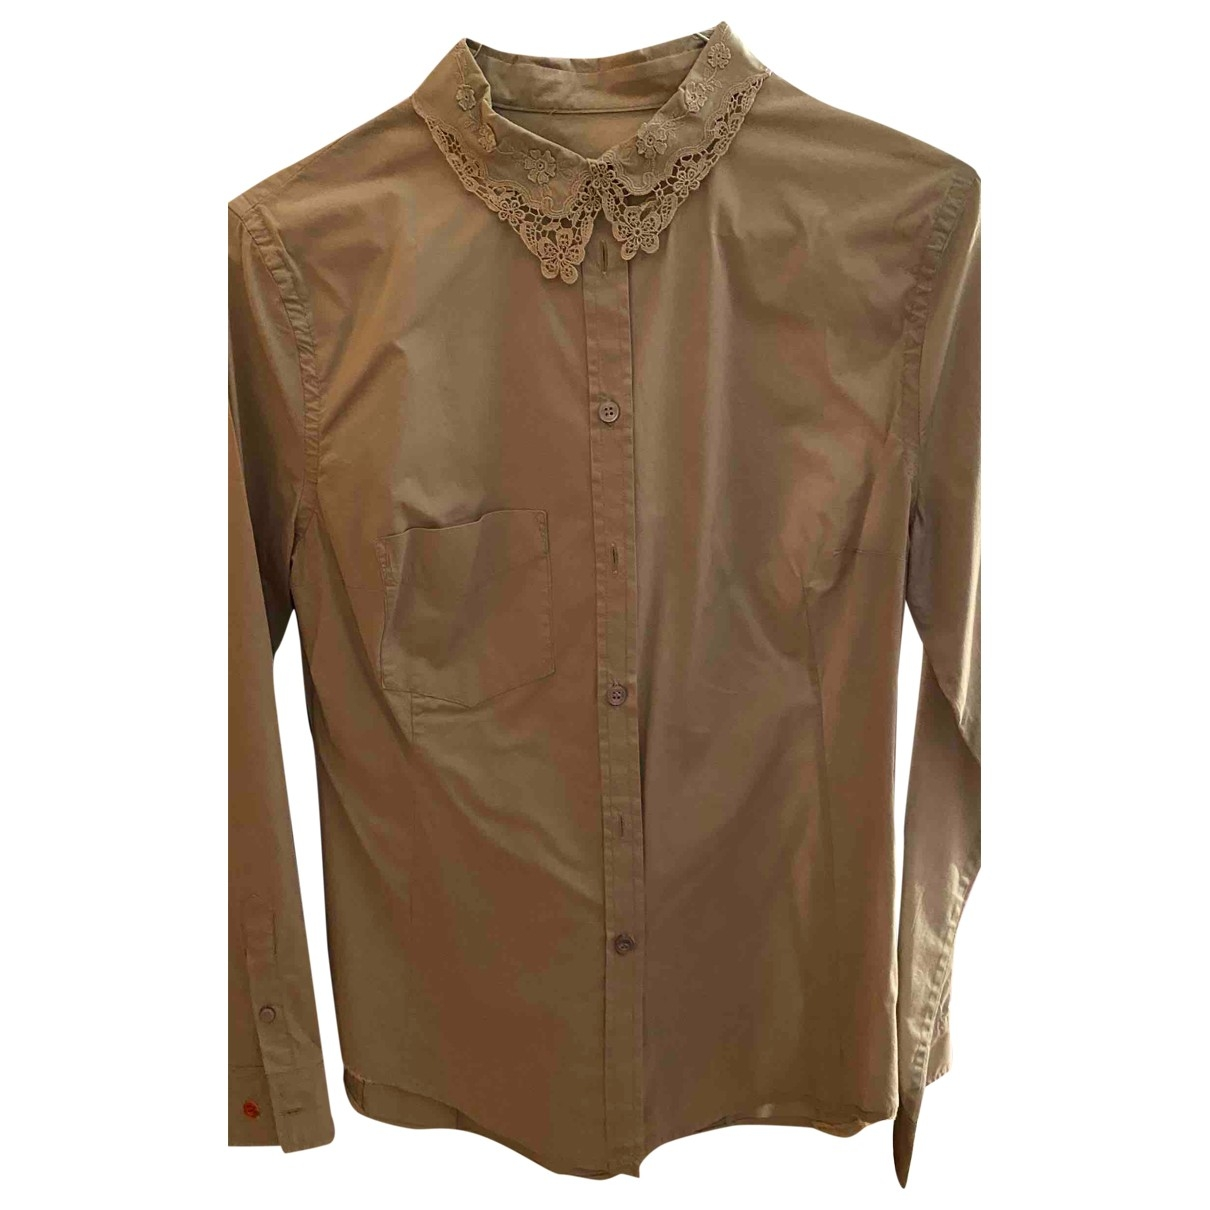 Paul Smith \N Beige Cotton  top for Women 36 FR